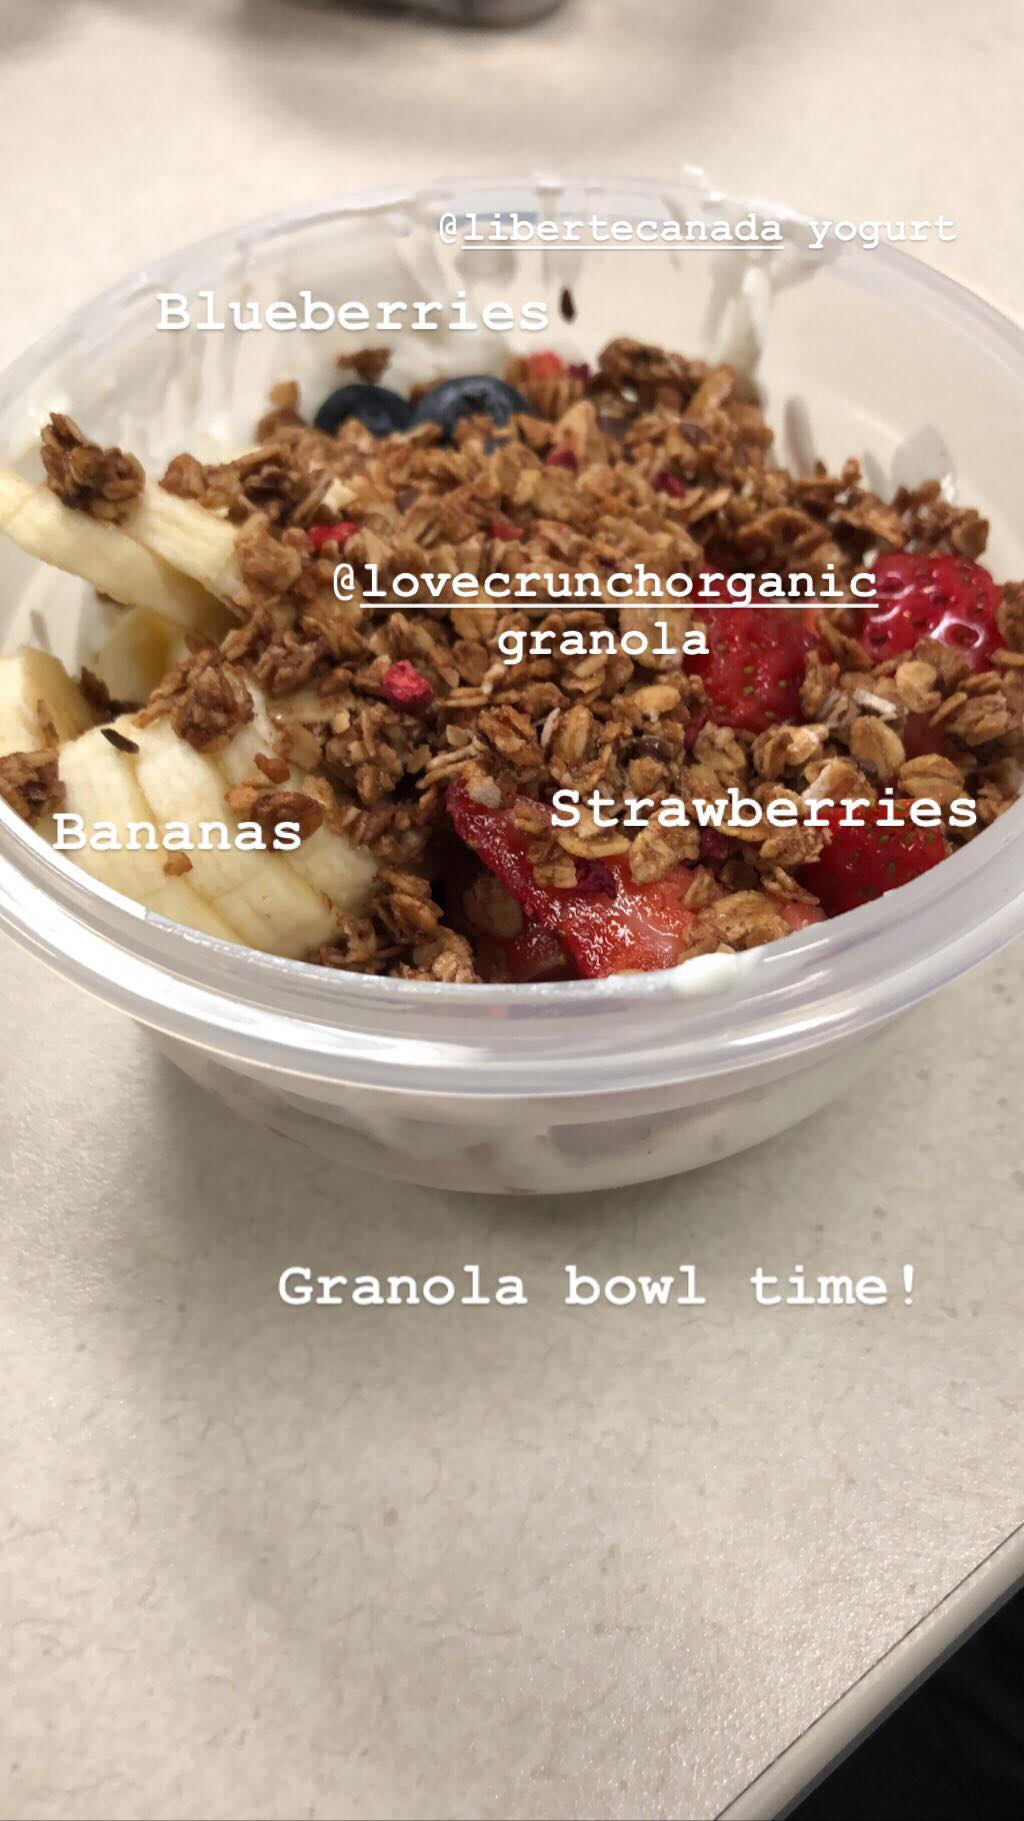 Yummy granola bowl made right at my desk!